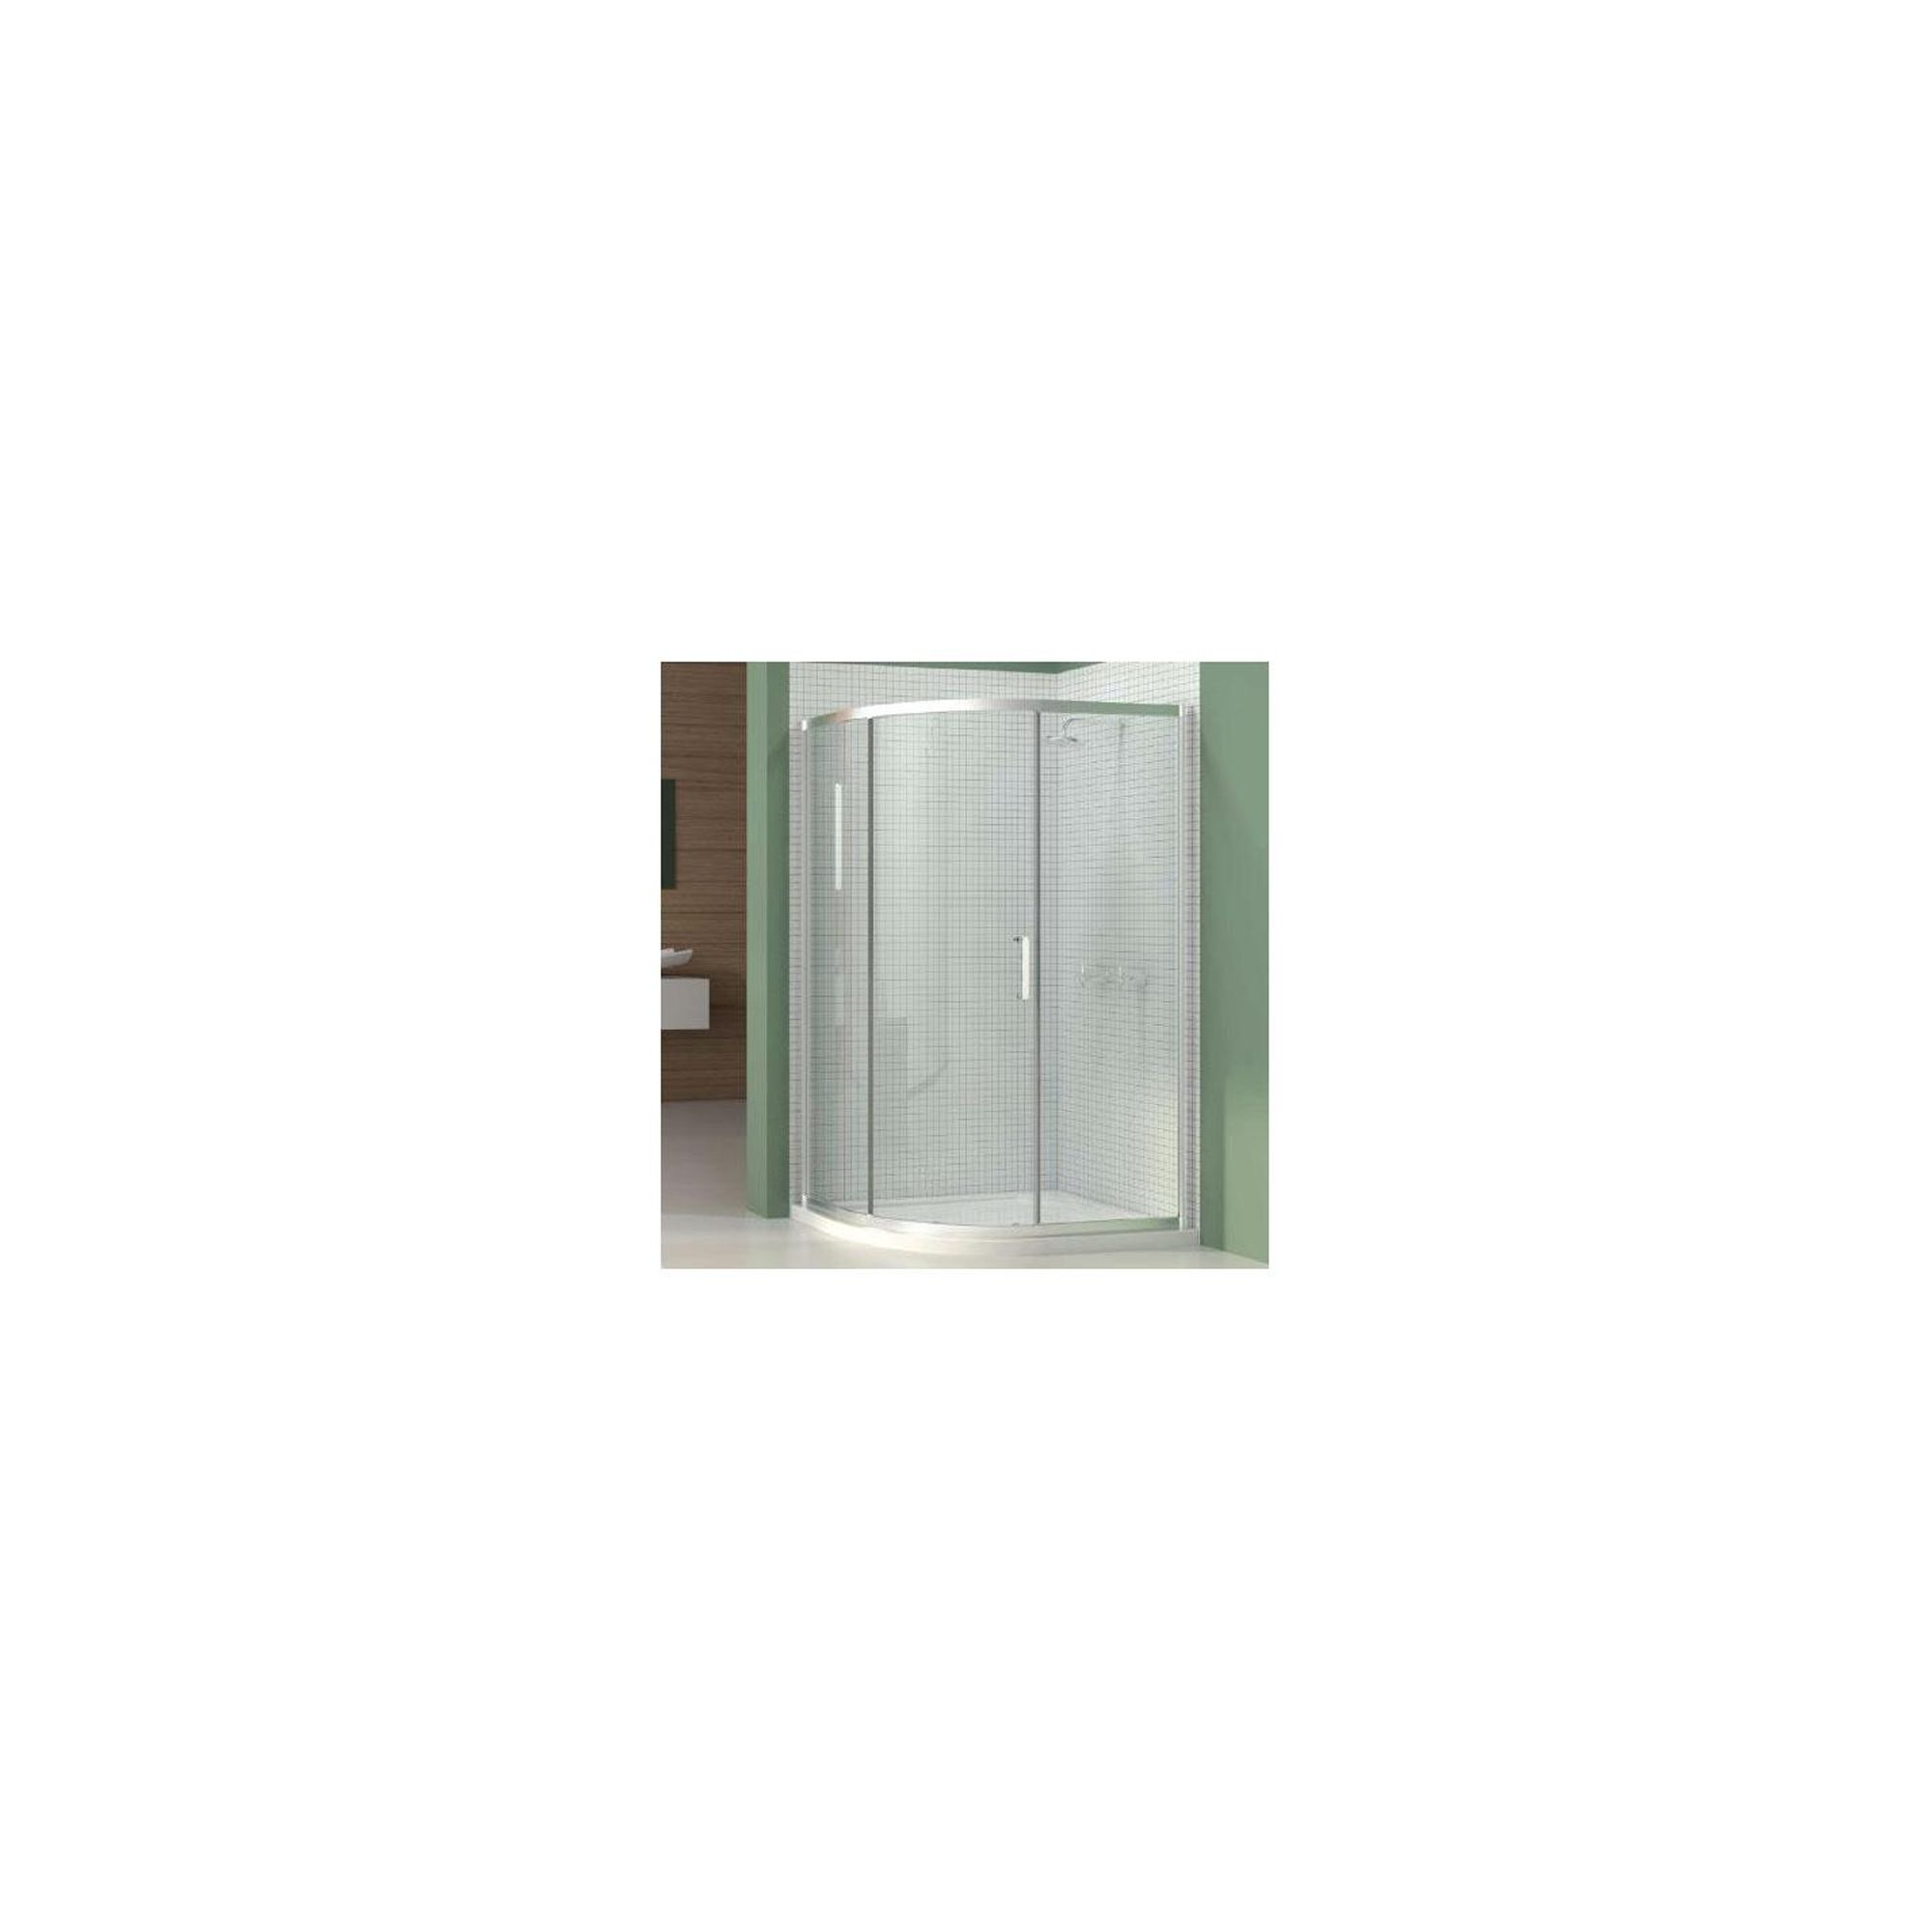 Merlyn Vivid Six Offset Quadrant Shower Door, 1200mm x 800mm, 6mm Glass at Tesco Direct